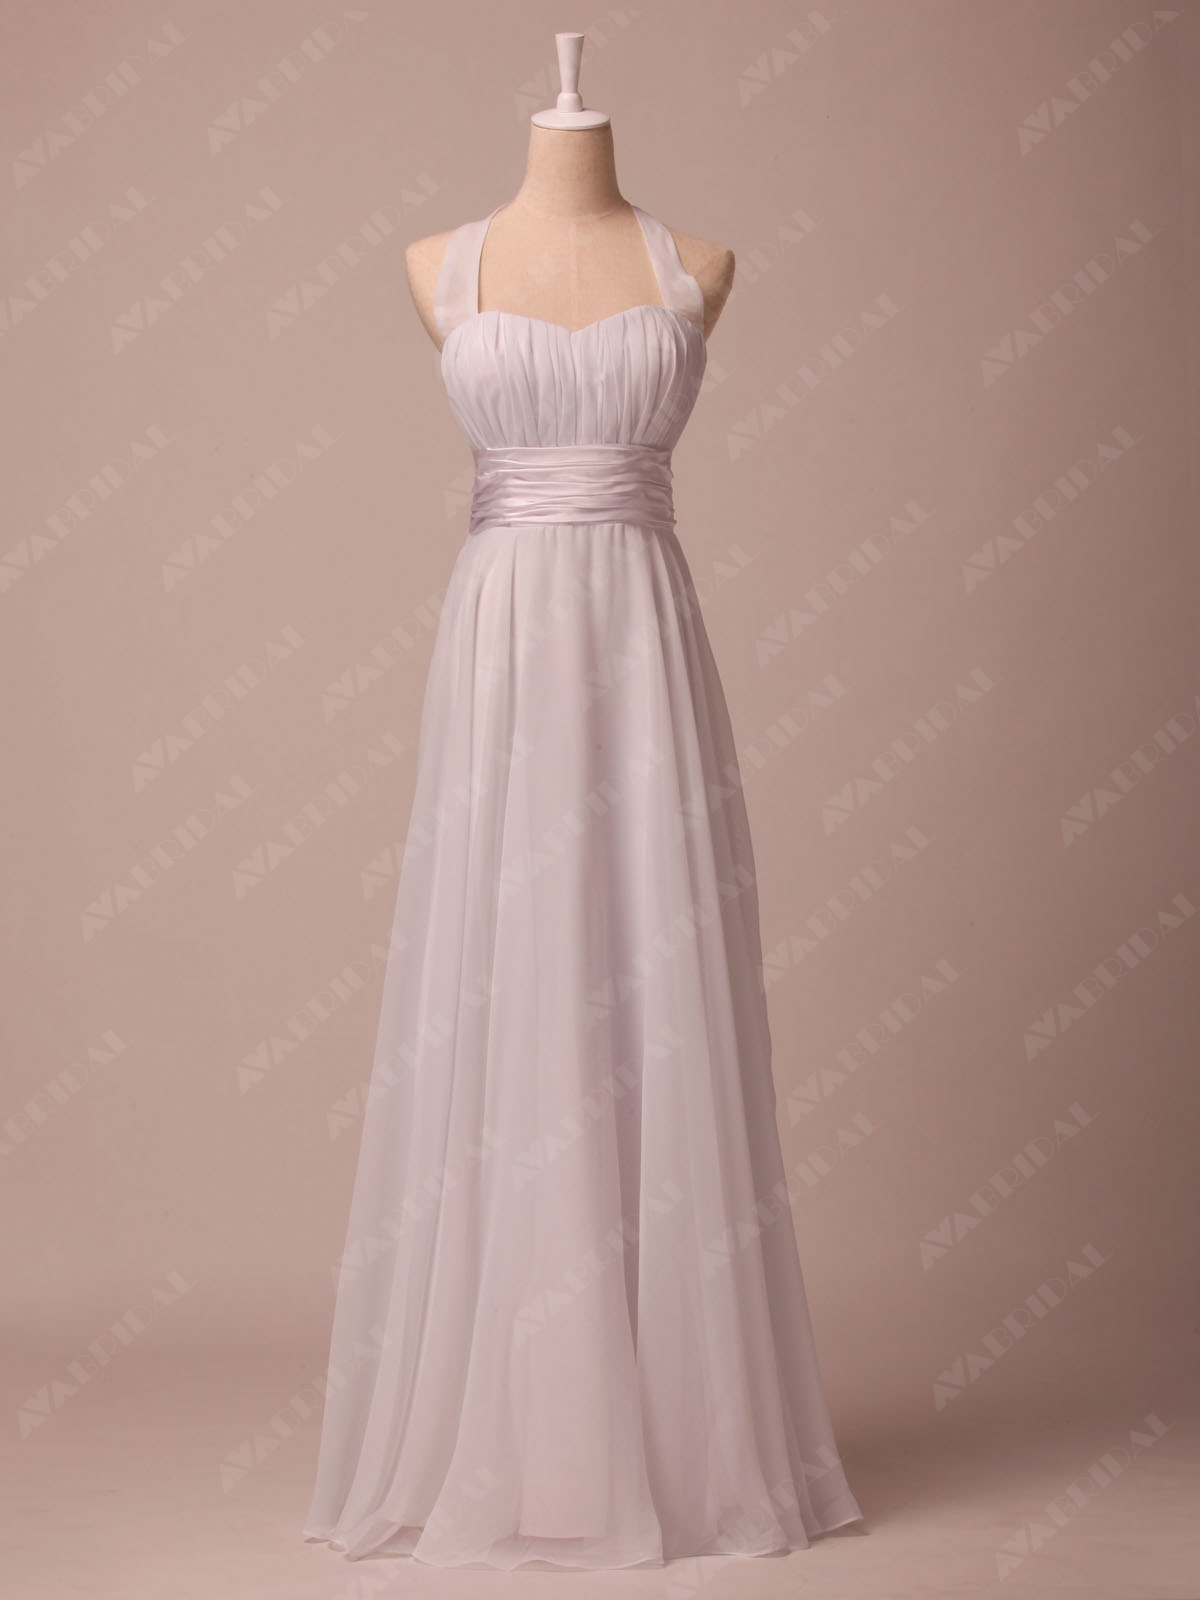 Chic Simple Wedding Dress - Gina - Front